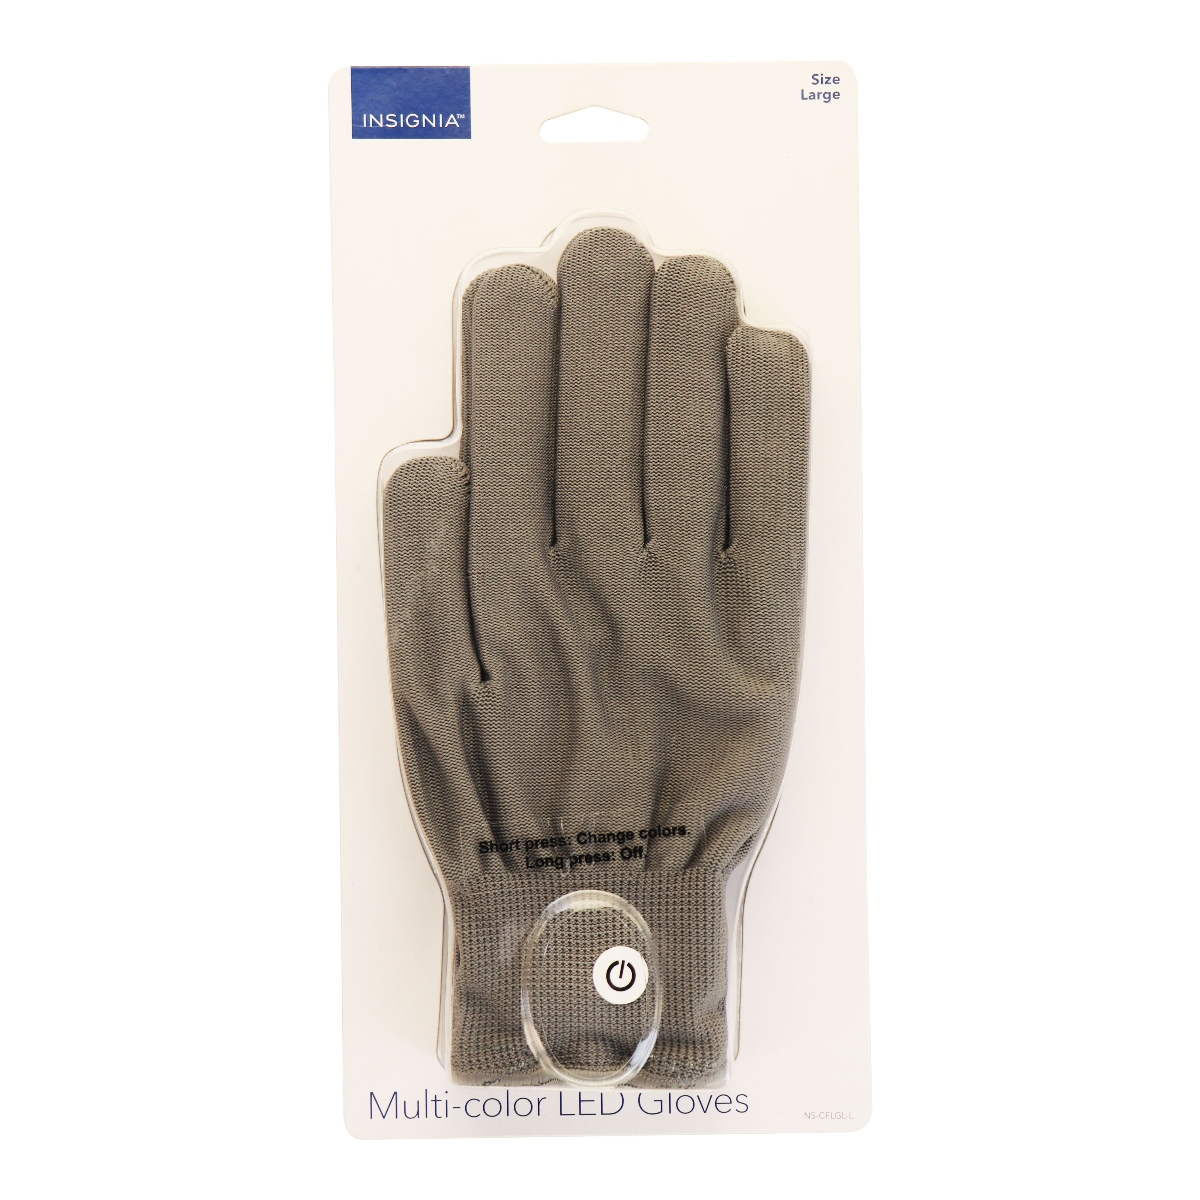 Insignia Multi-color LED Gloves with Lights - Large Size (NS-CFLGL-L) Gray